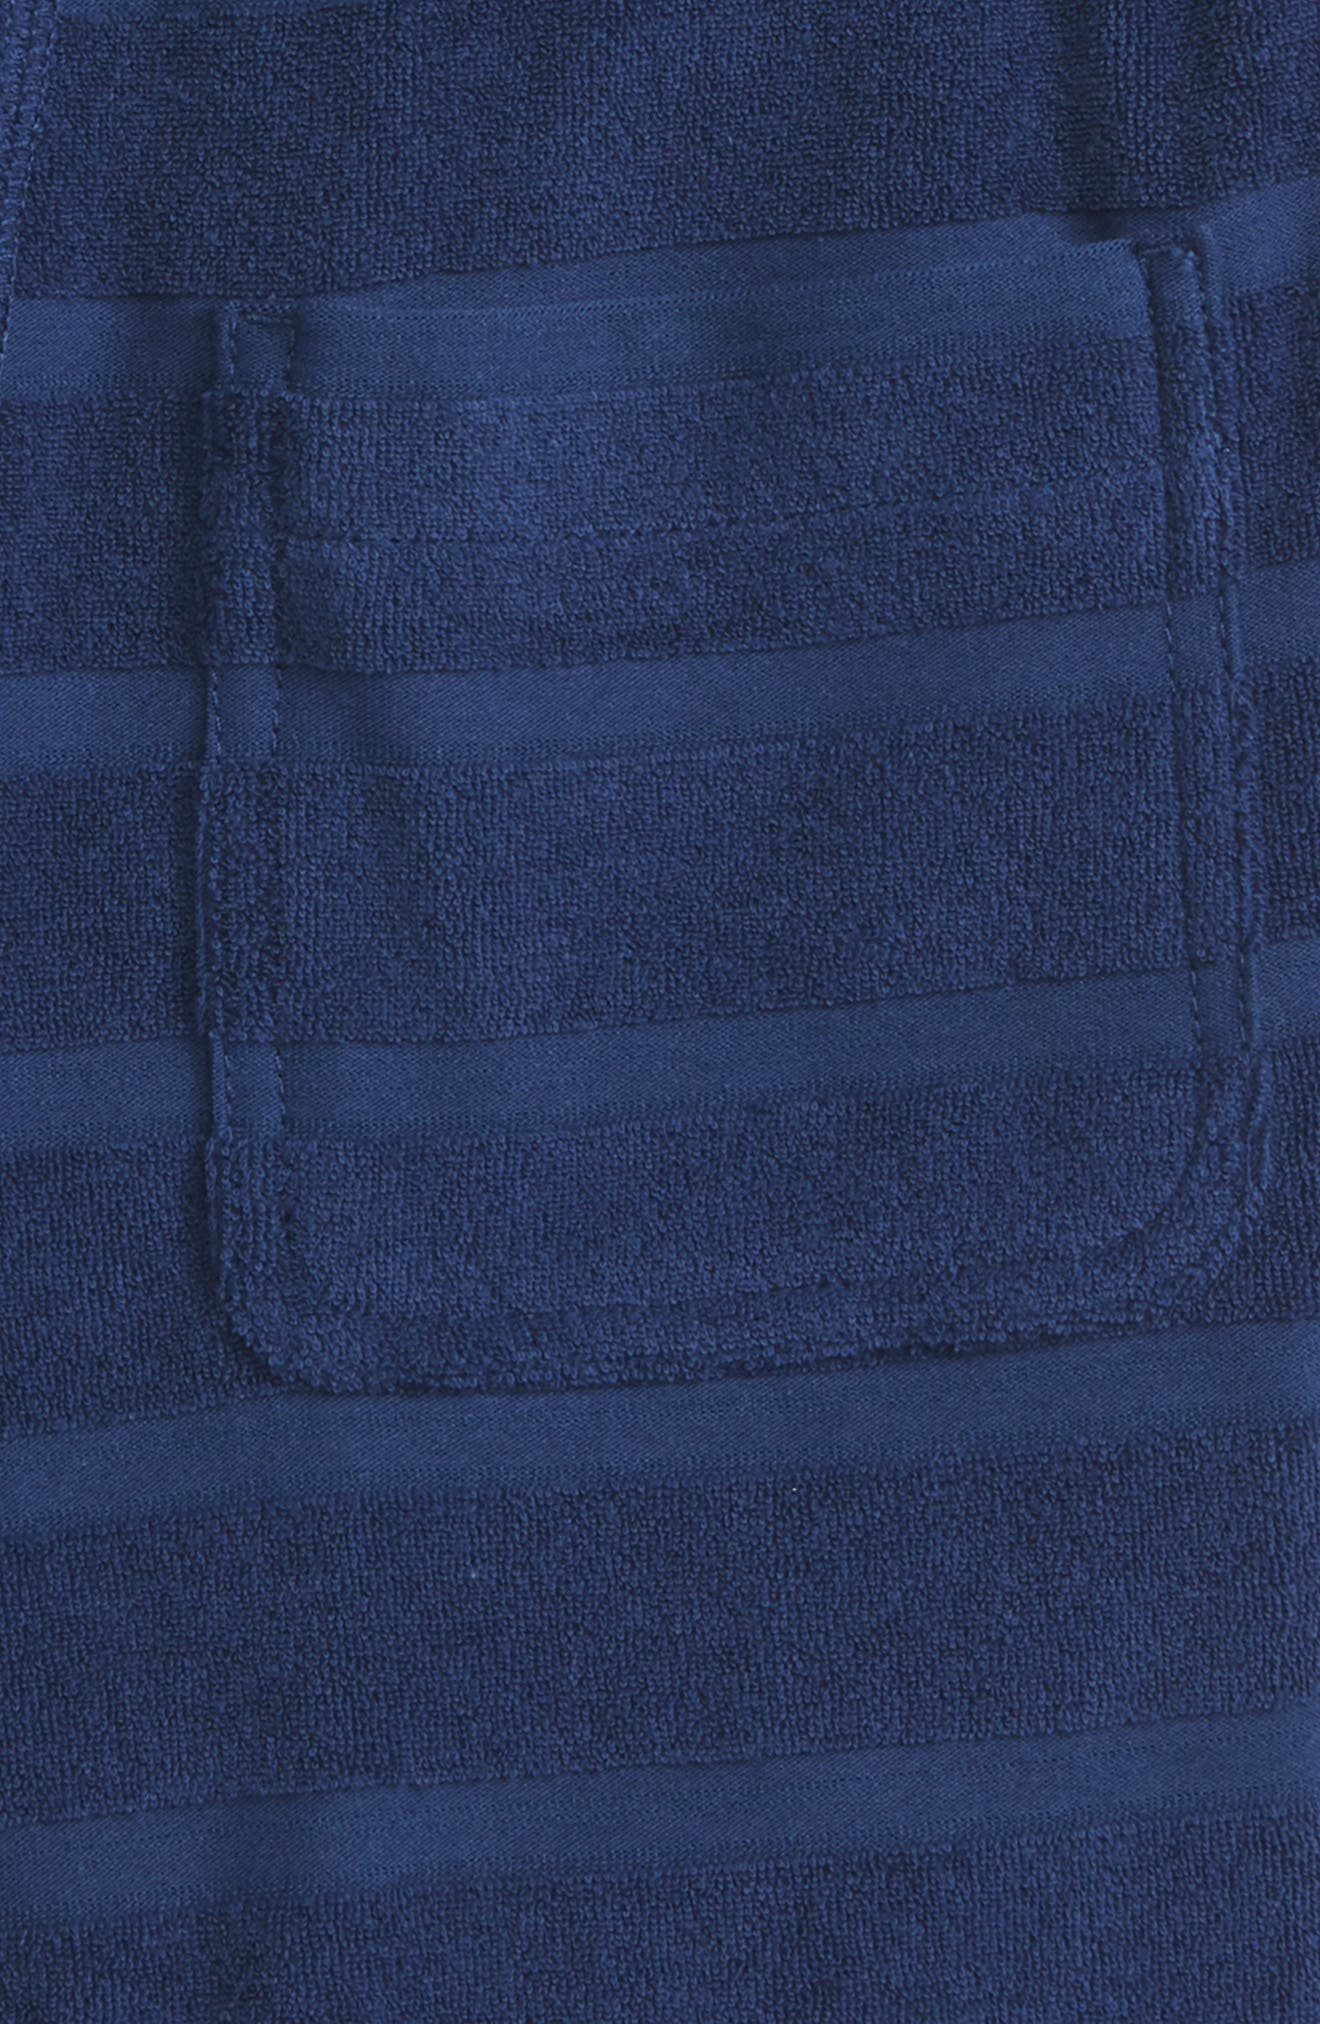 Toweling Shorts,                             Alternate thumbnail 3, color,                             Beacon Blue